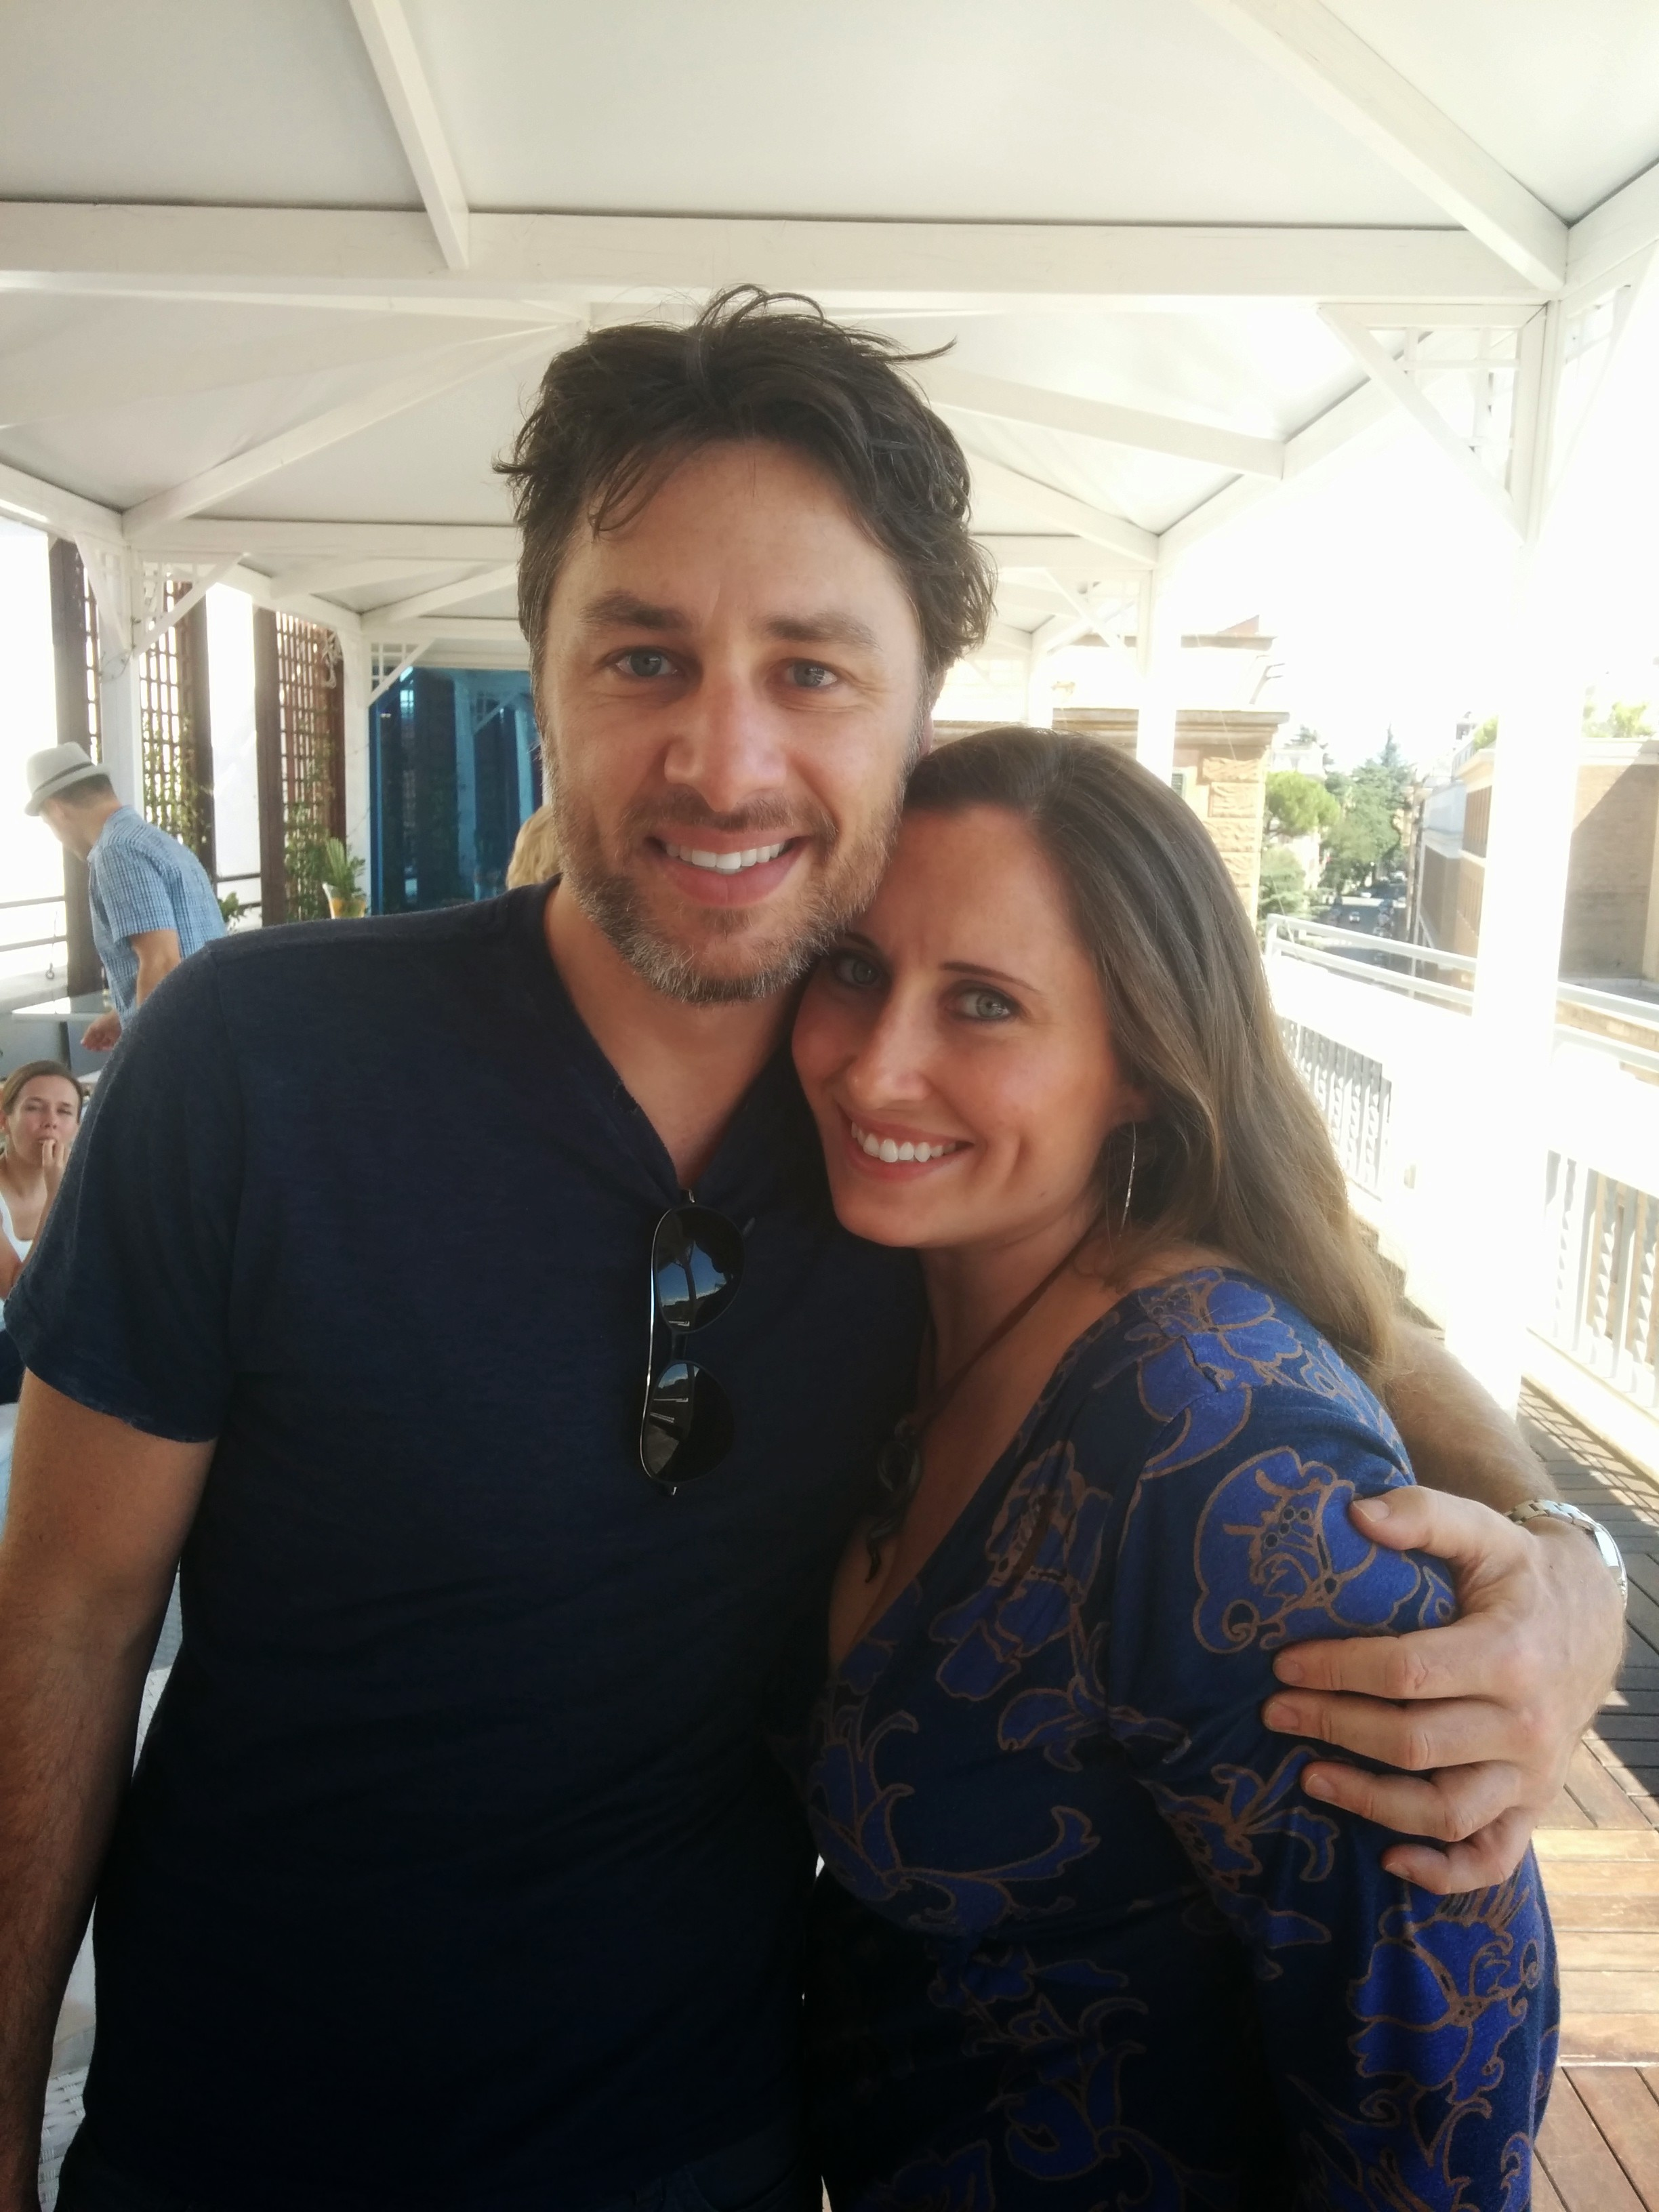 Zach Braff, Kaitlyn Hanrahan, and Daniele Isidori having drinks before the Italy premiere of Wish I Was Here